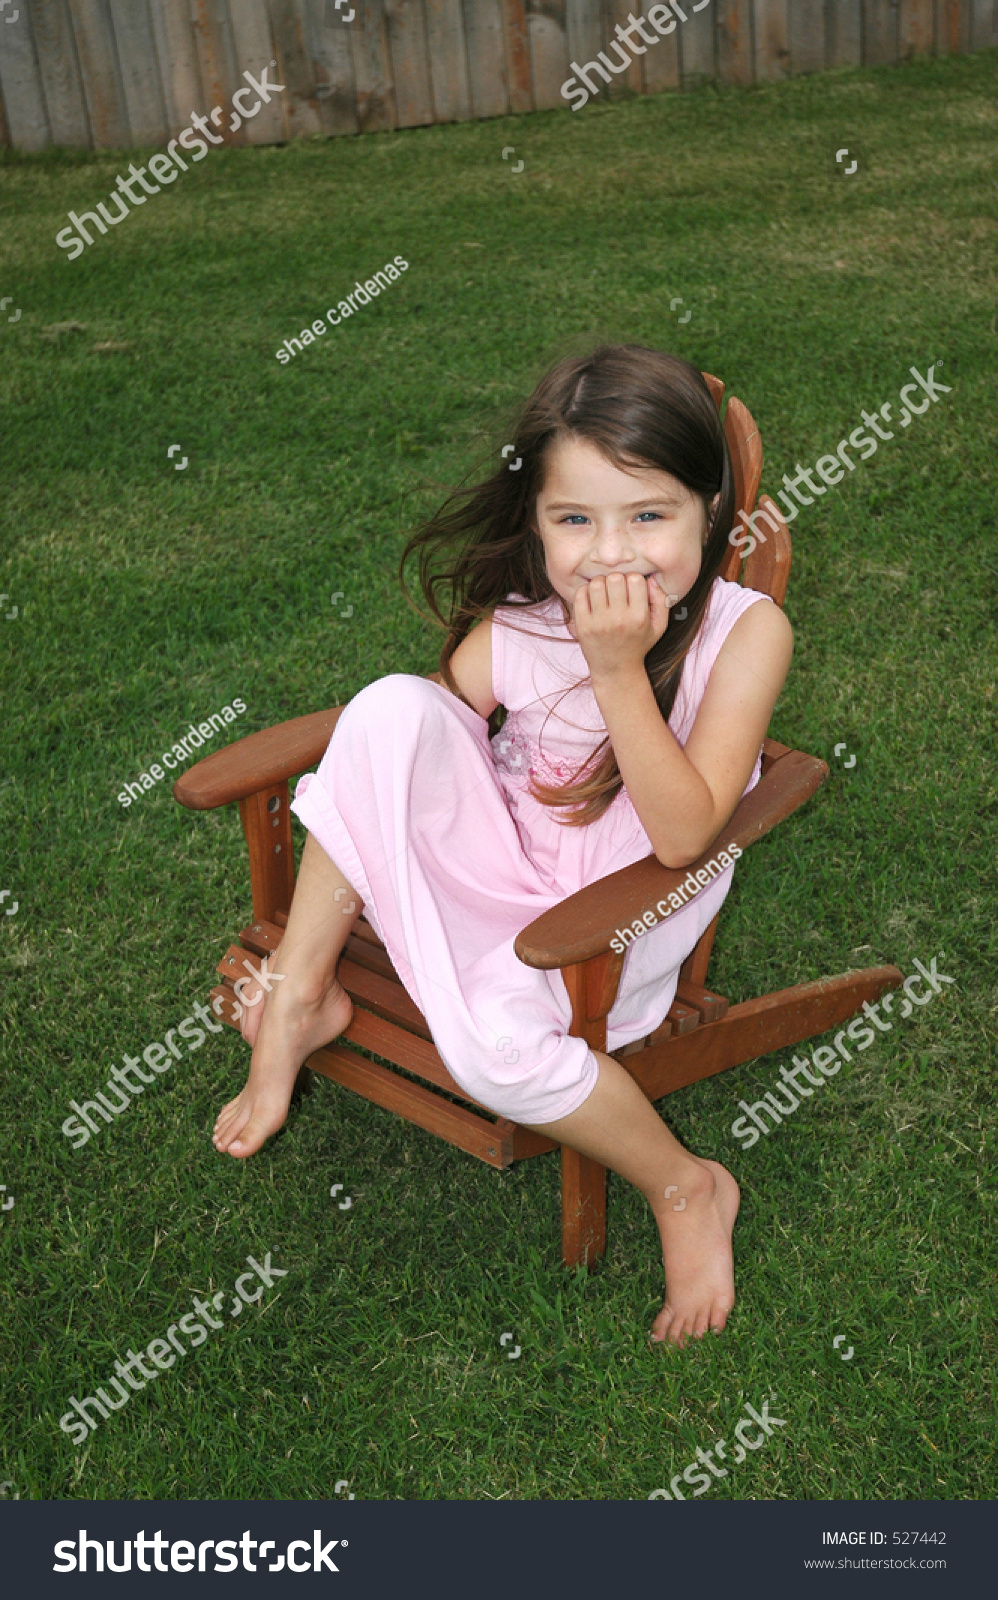 Little Girl Sitting Lawn Chair Laughing Stock Photo 527442